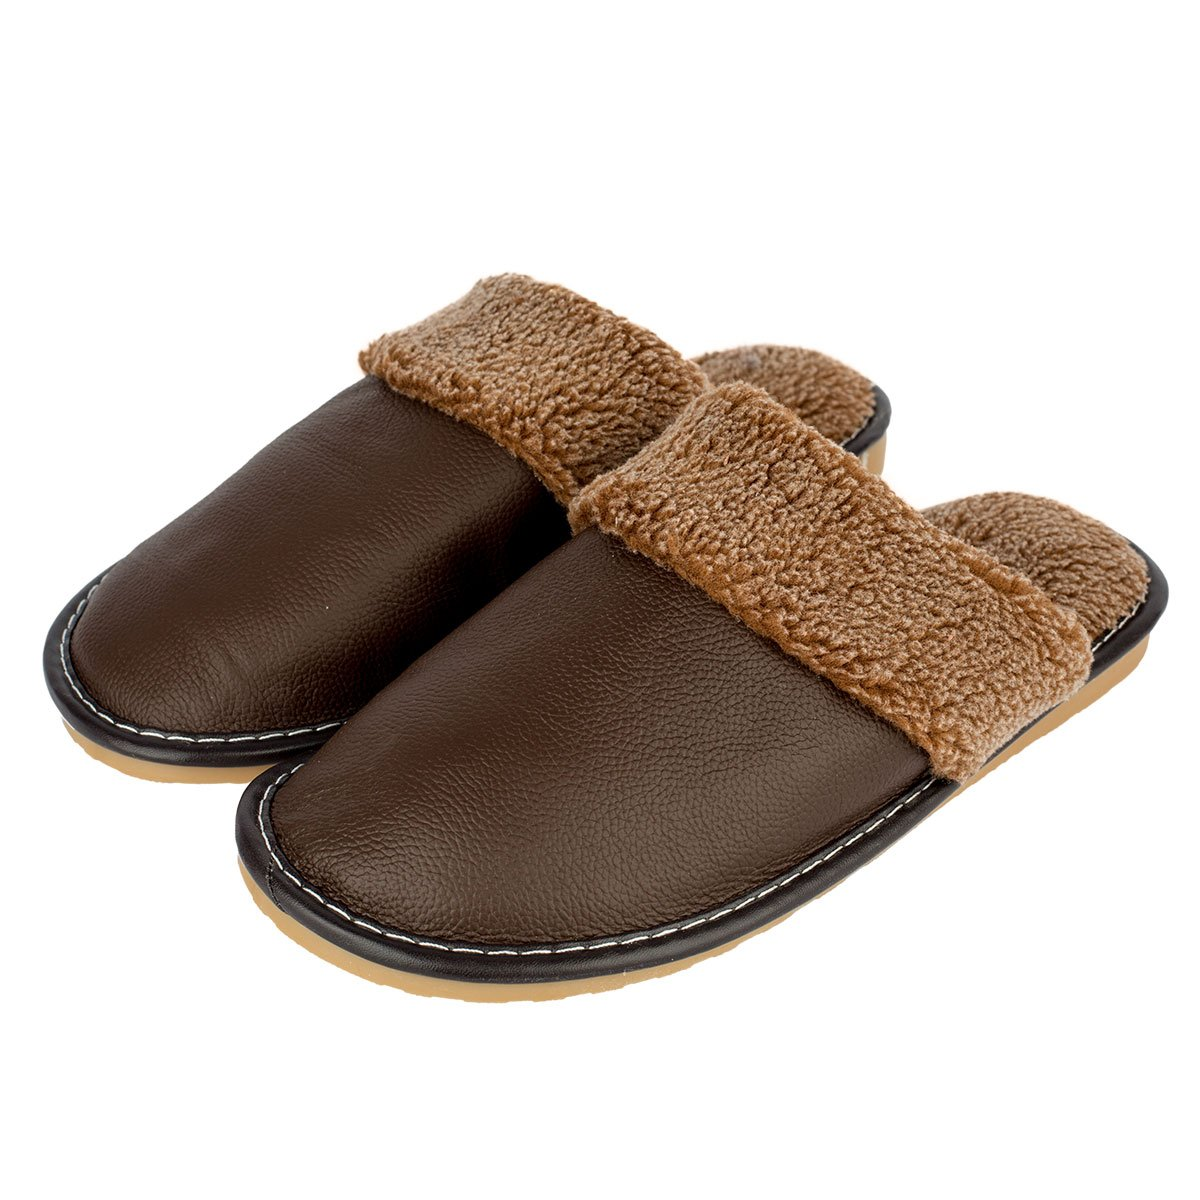 Haisum Mens Winter Autumn Genuine Leather Soft Comfy Lining Cozy Slip-On Lined Mule House Slippers